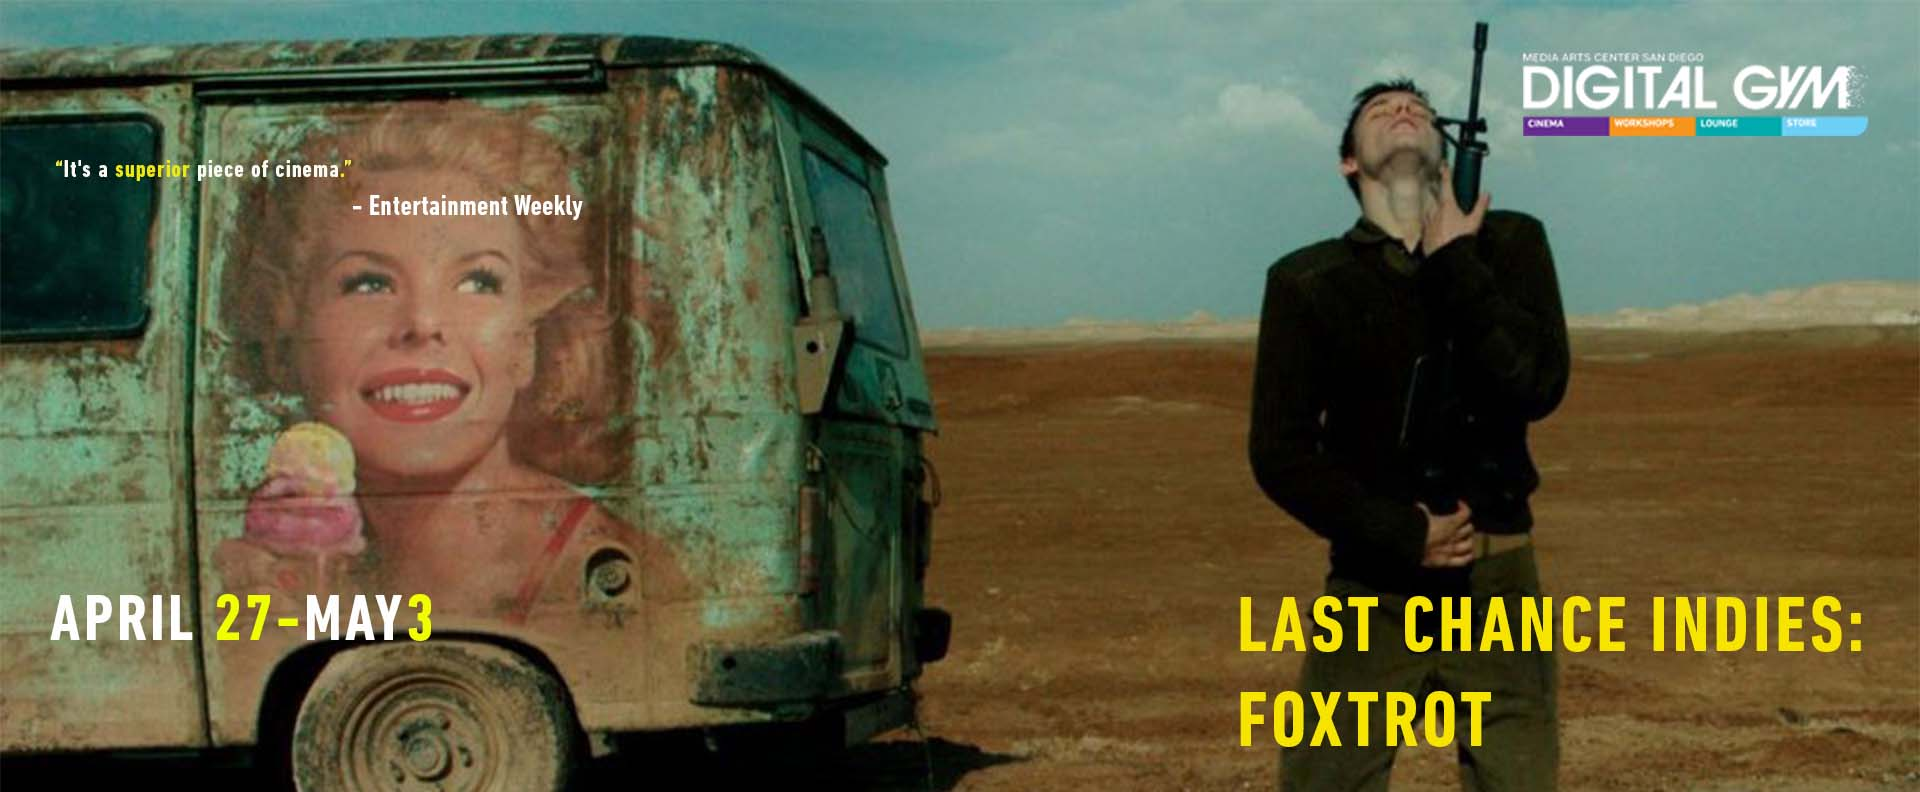 Last Chance Indies: Foxtrot (April 27 – May 3)